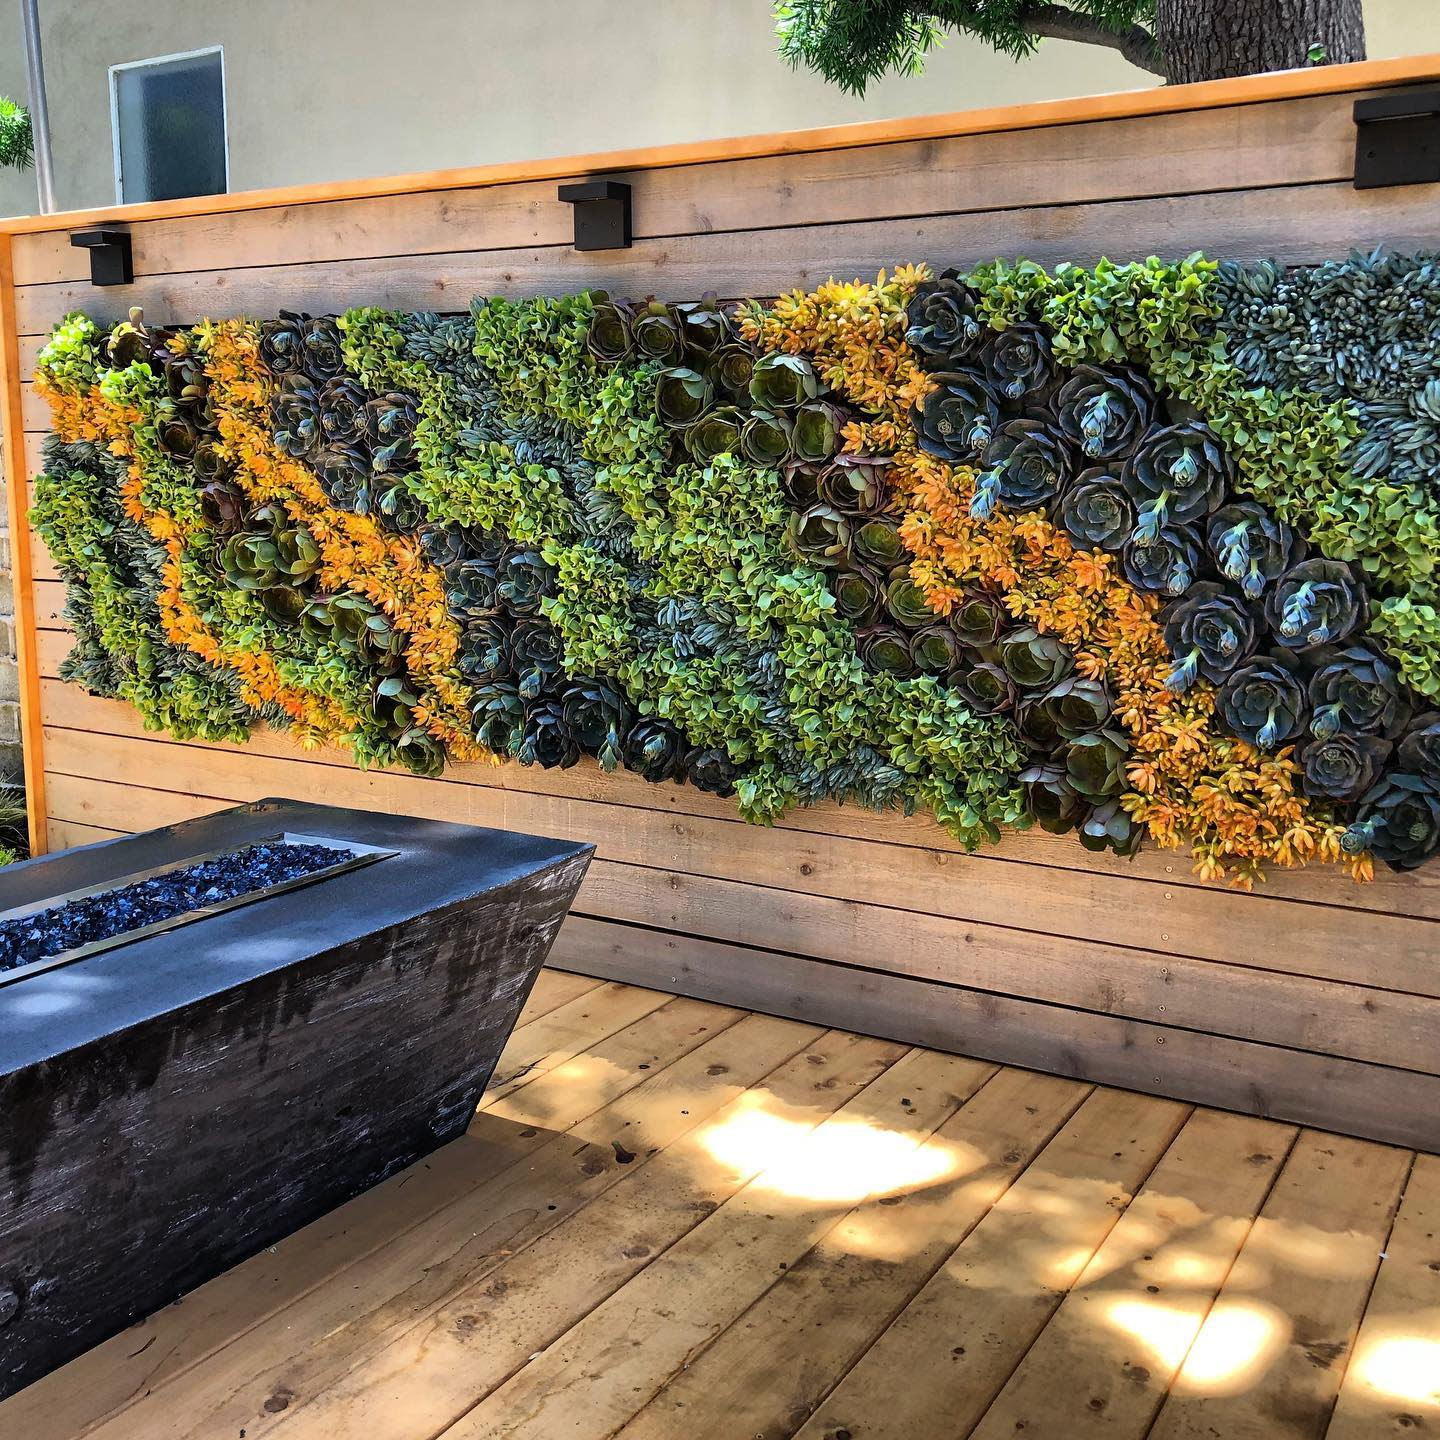 Plant Outdoor Wall Decor Ideas -mikepyledesign